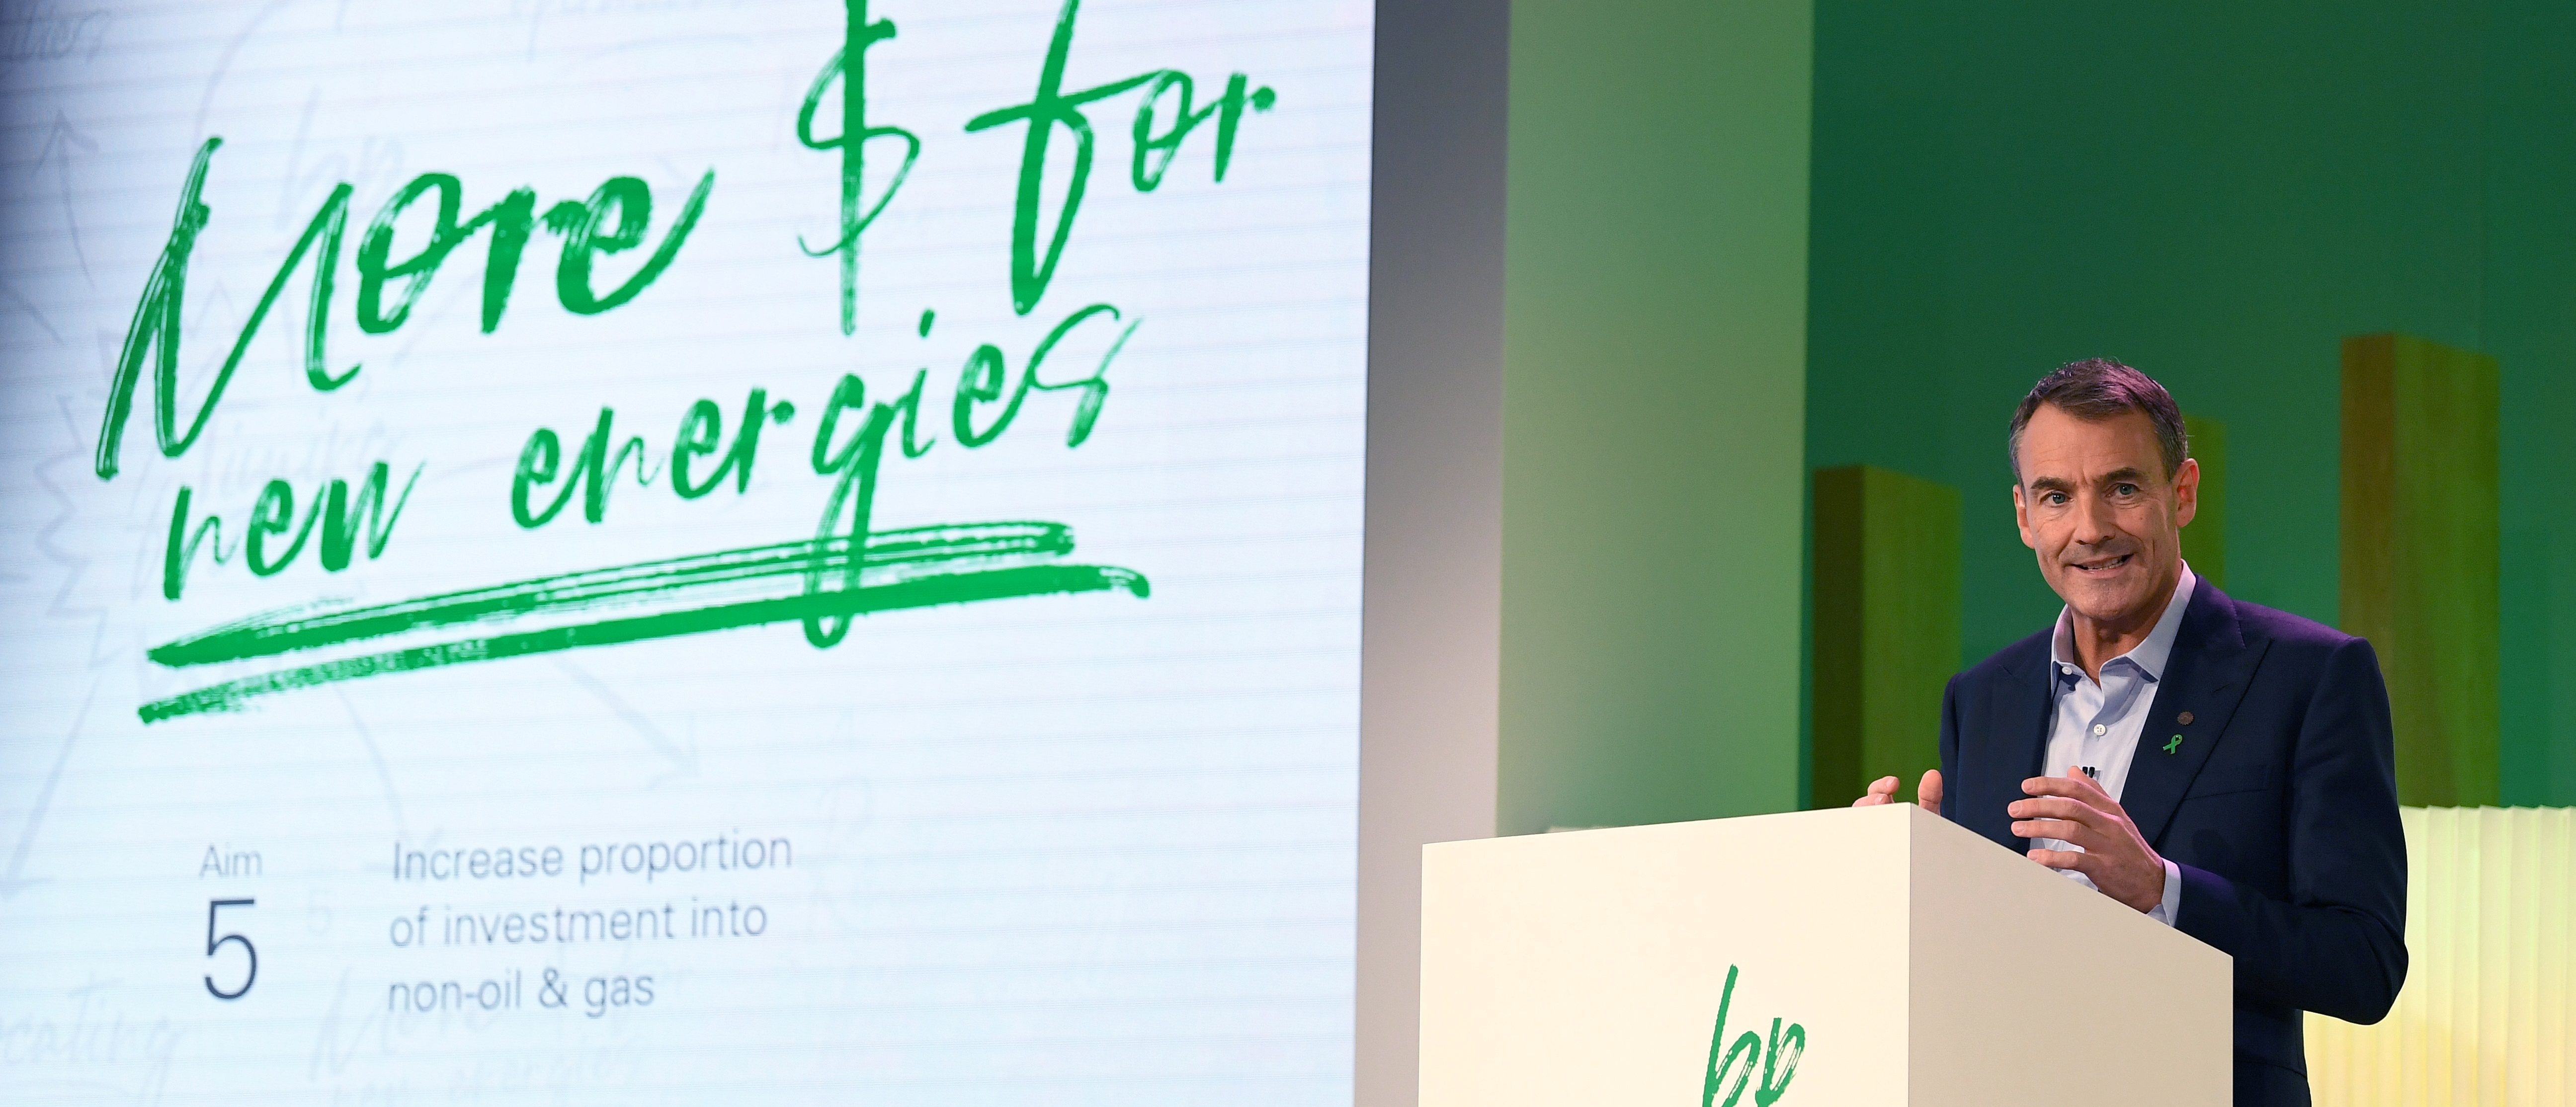 """BP CEO Bernard Looney speaks during an event in London on February 12, 2020, where he declared the company's intentions to achieve """"net zero"""" carbon emissions by 2050. - British energy giant BP, under the leadership of new chief executive Bernard Looney, declared Wednesday its aim to achieve """"net zero"""" carbon emissions by 2050, although it was vague on how it planned to hit the target. """"BP's new ambition to be a net zero company by 2050 or sooner covers the greenhouse gas emissions from its operations worldwide... and the carbon in the oil and gas that it produces,"""" said a statement ahead of a speech by Looney on plans to """"fundamentally transform its whole organisation"""". (Photo by DANIEL LEAL-OLIVAS / AFP) (Photo by DANIEL LEAL-OLIVAS/AFP via Getty Images)"""